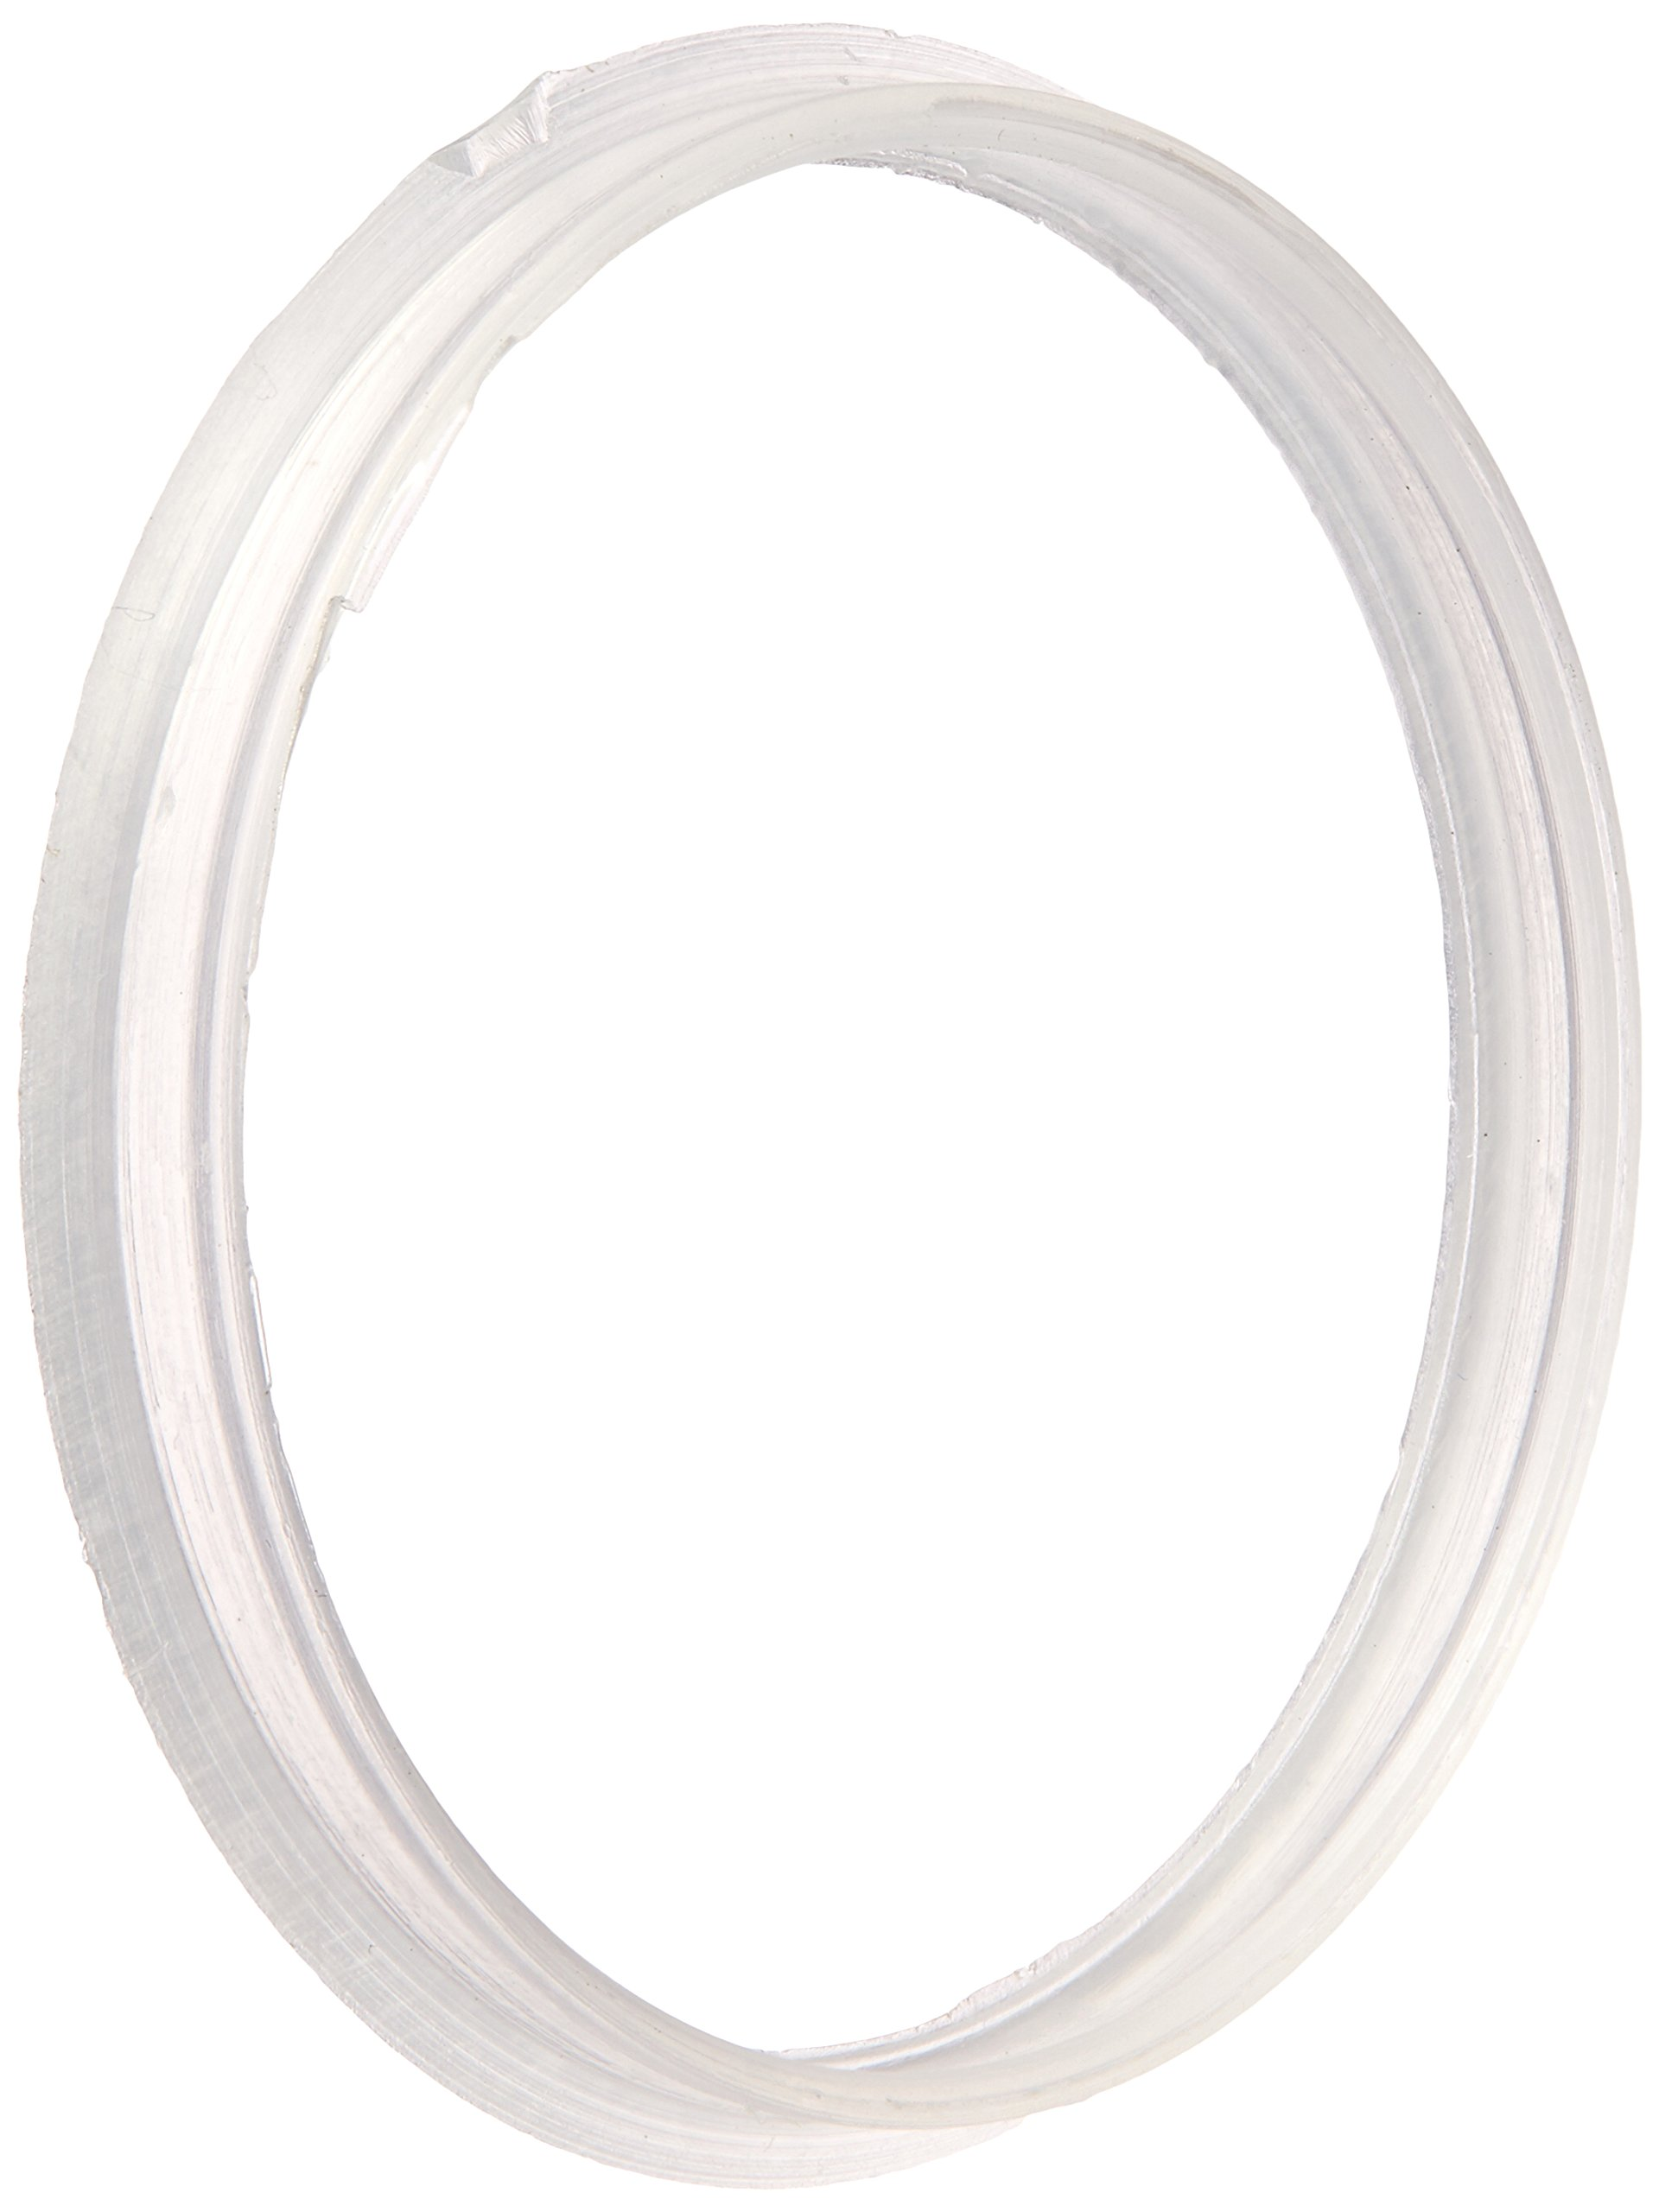 Benchmark Scientific Hybex B3000-RIN Polypropylene Replacement Sealing Ring for Media Storage Bottle, GL45 Thread Size (Pack of 10) by Benchmark Scientific